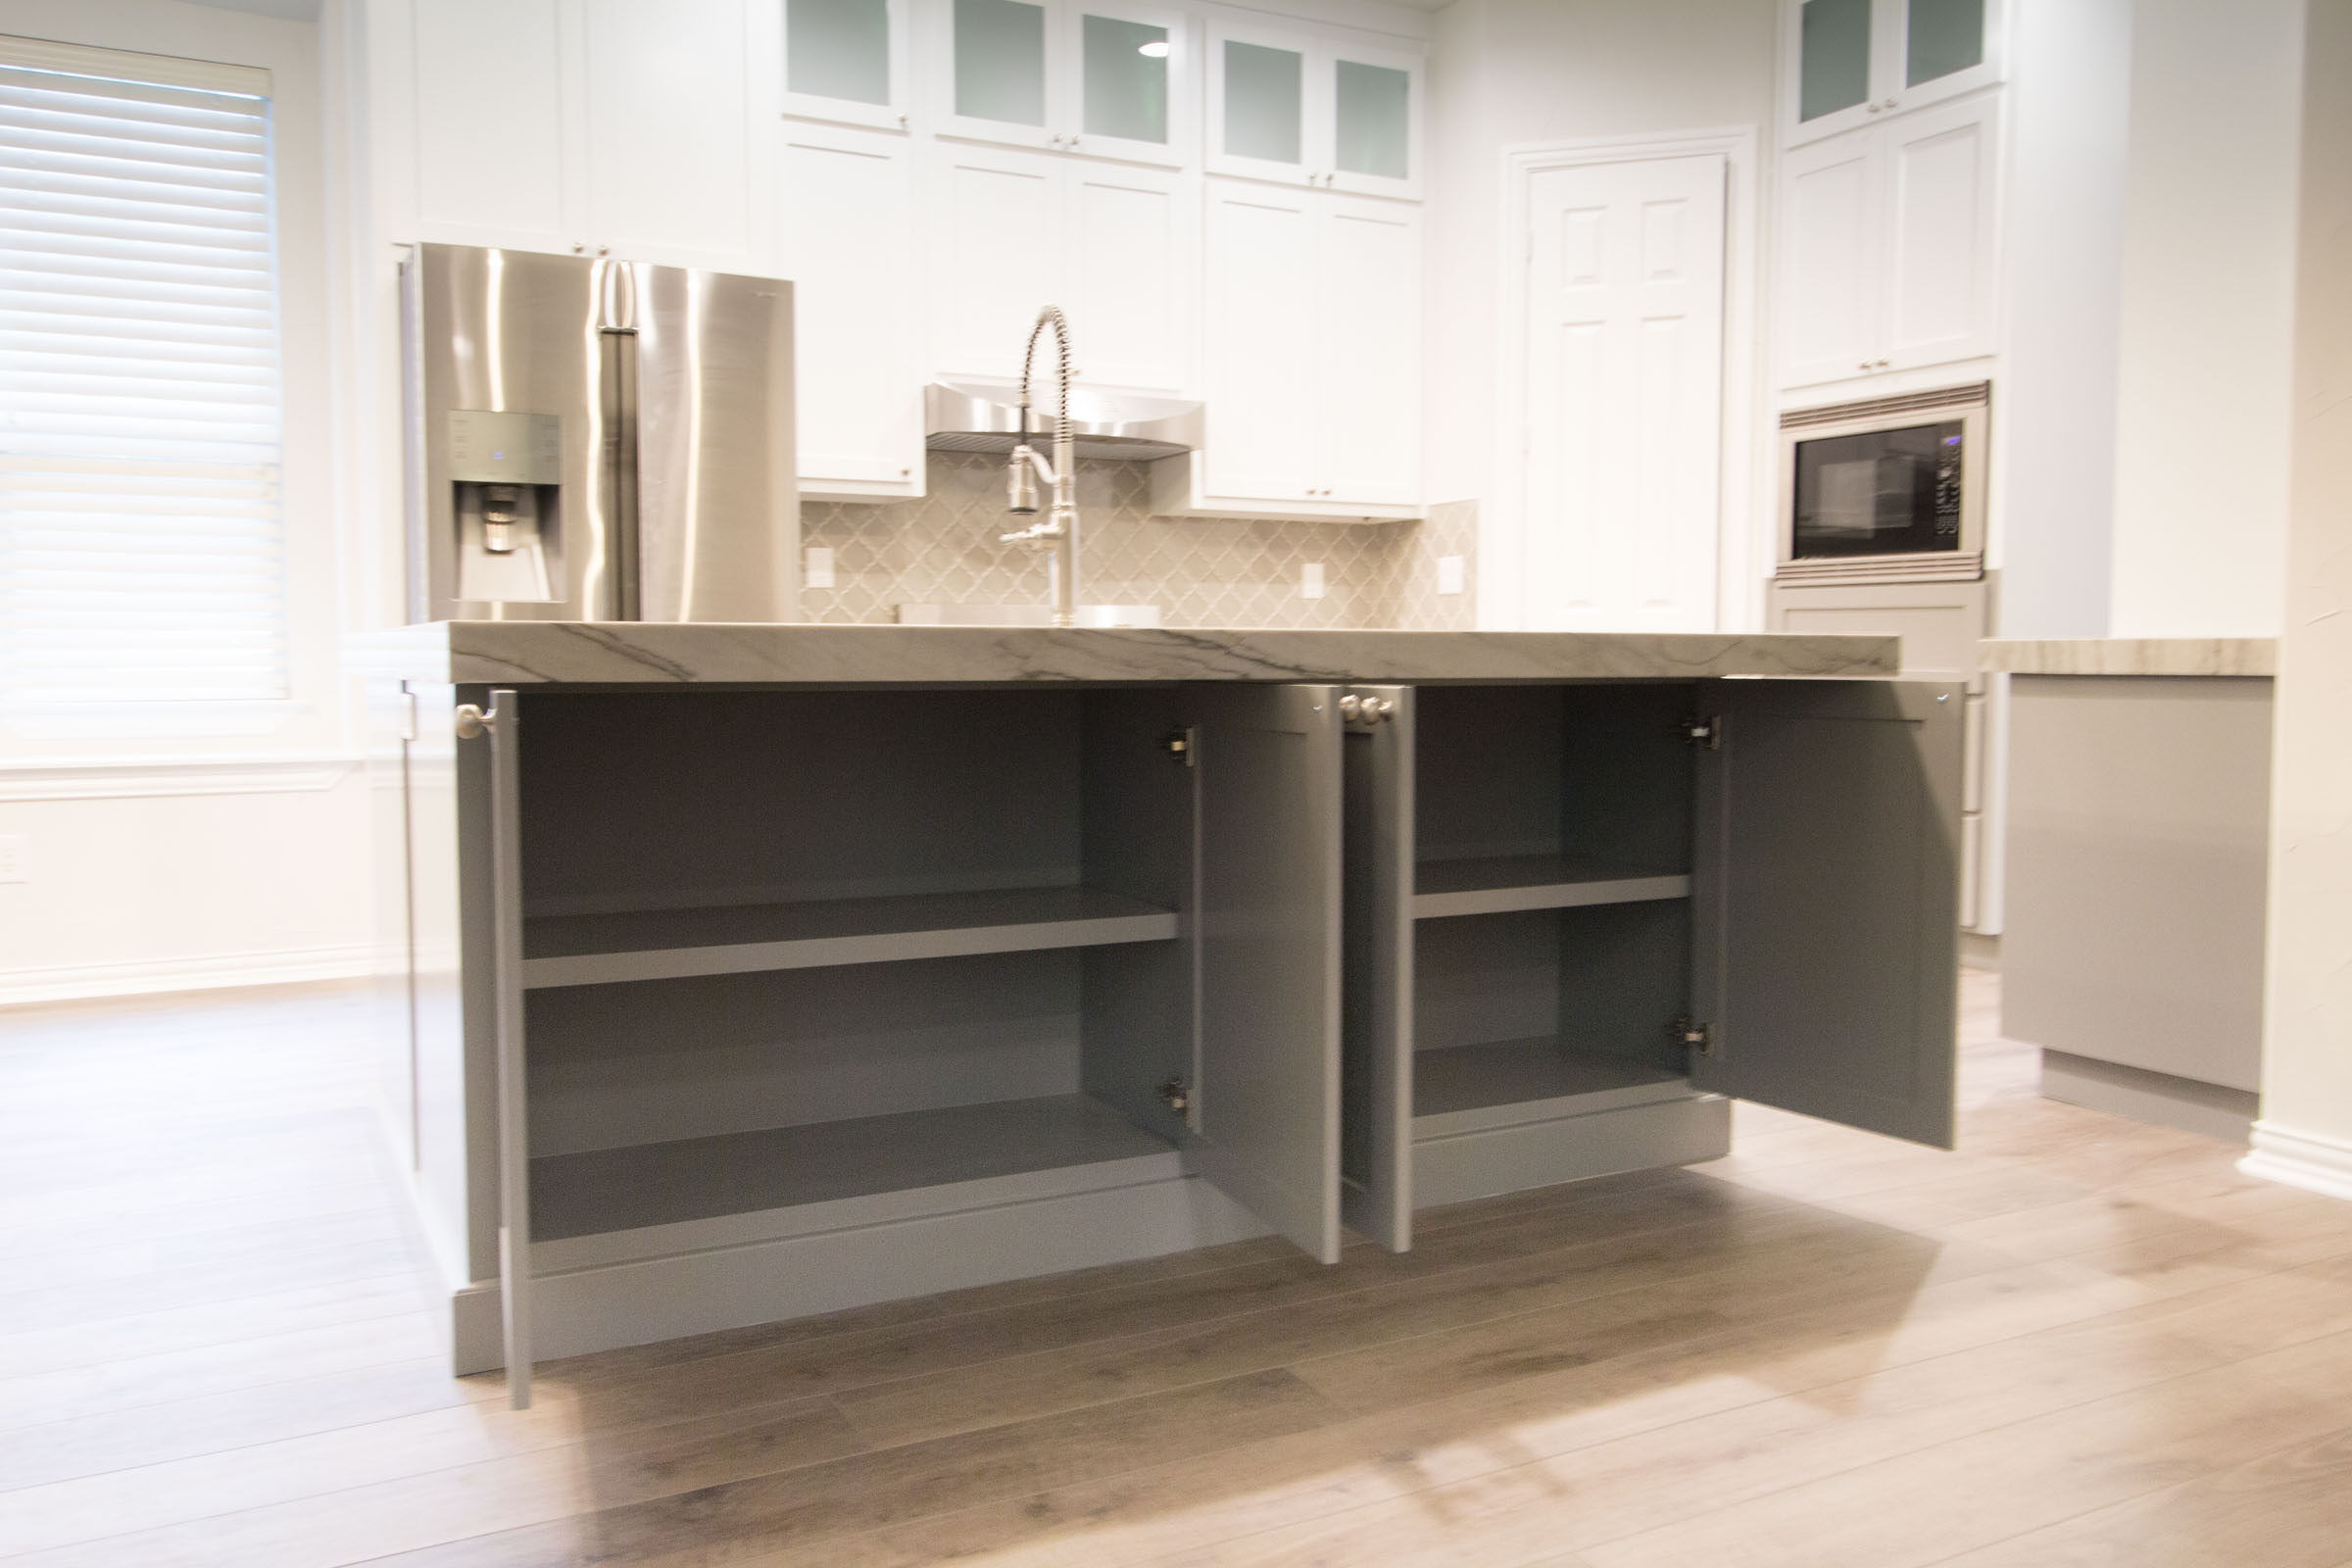 Contemporary kitchen remodel, showcasing under island storage space, open cabinet doors, bar island with sink